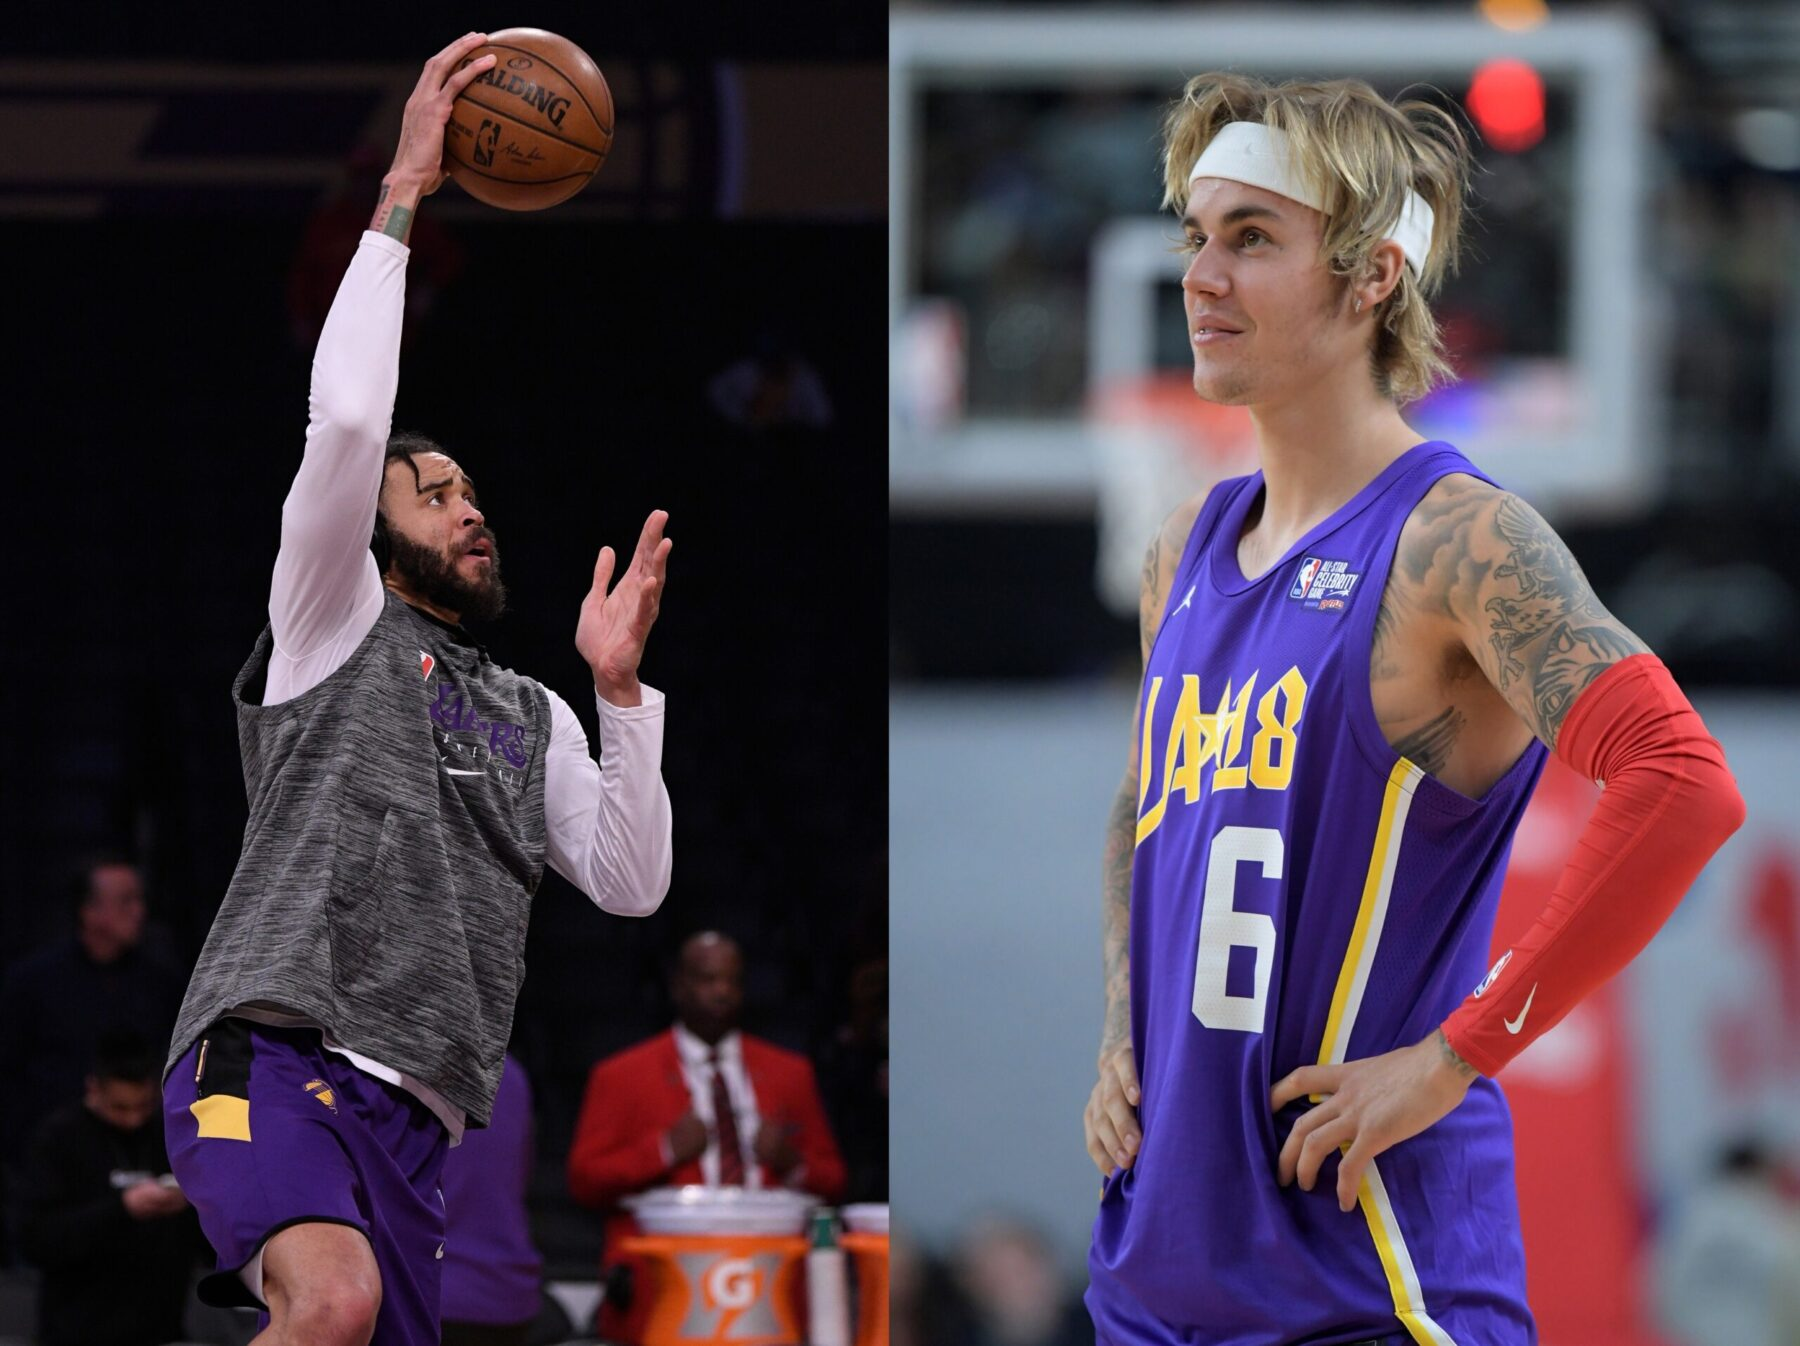 JaVale McGee and Justin Bieber